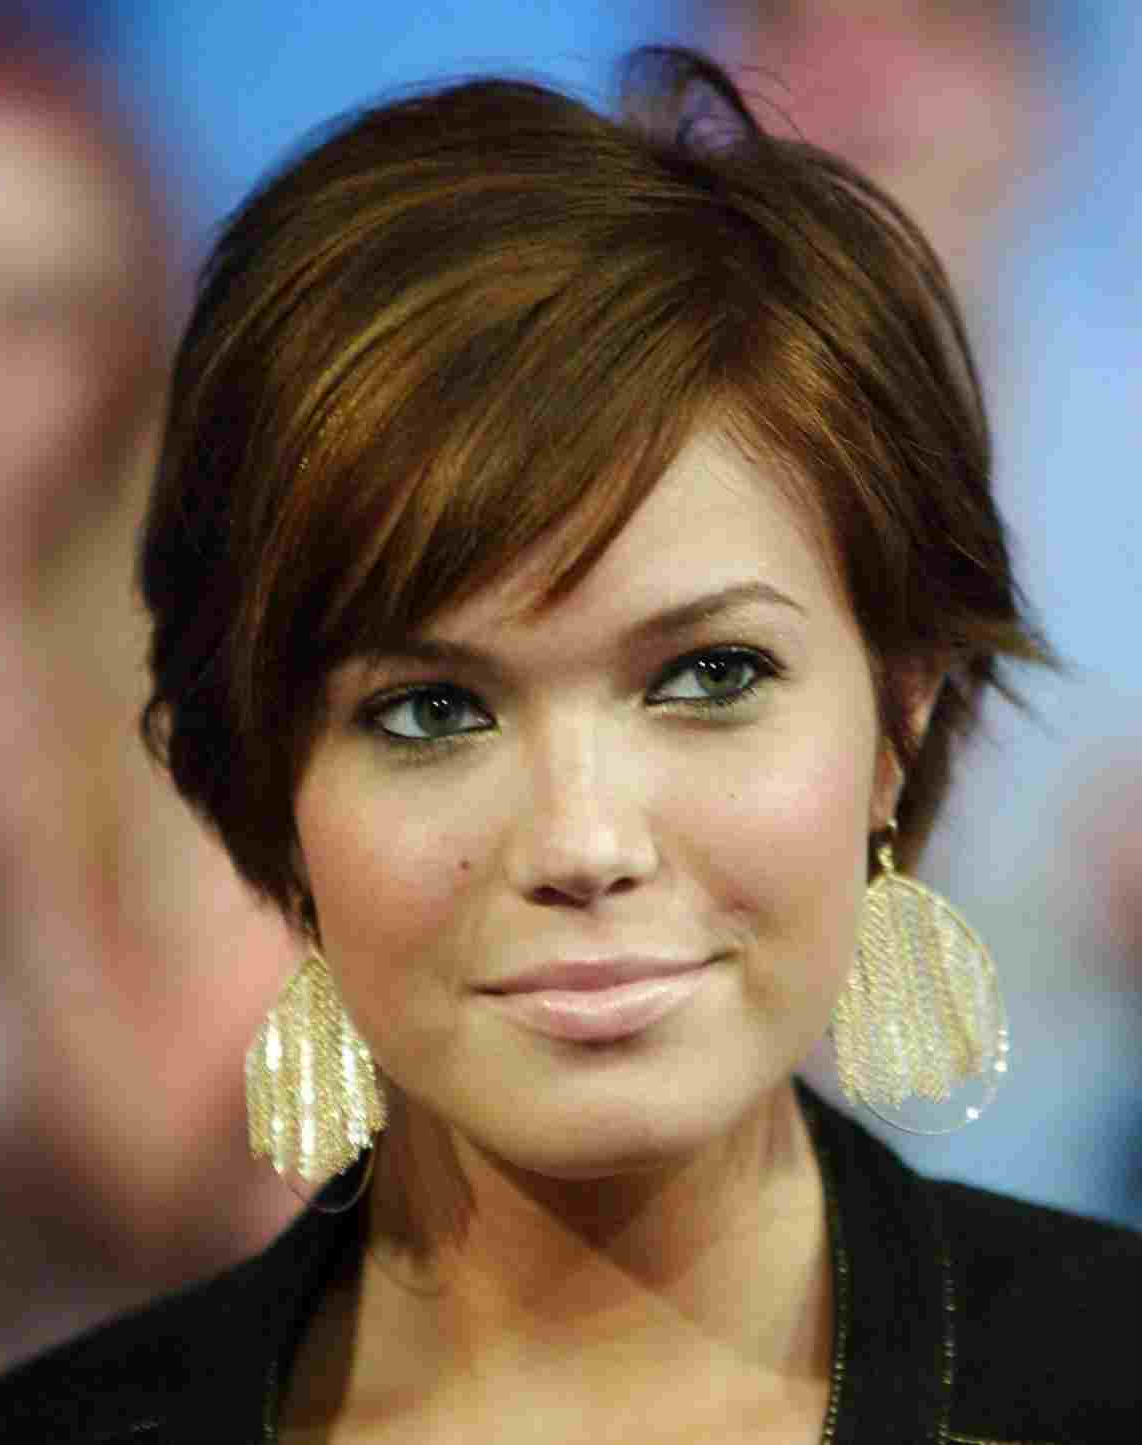 For Round Faces Front And Back Big Riverrhthebigriverreviewcom Regarding Medium Short Hairstyles For Round Faces (View 12 of 25)